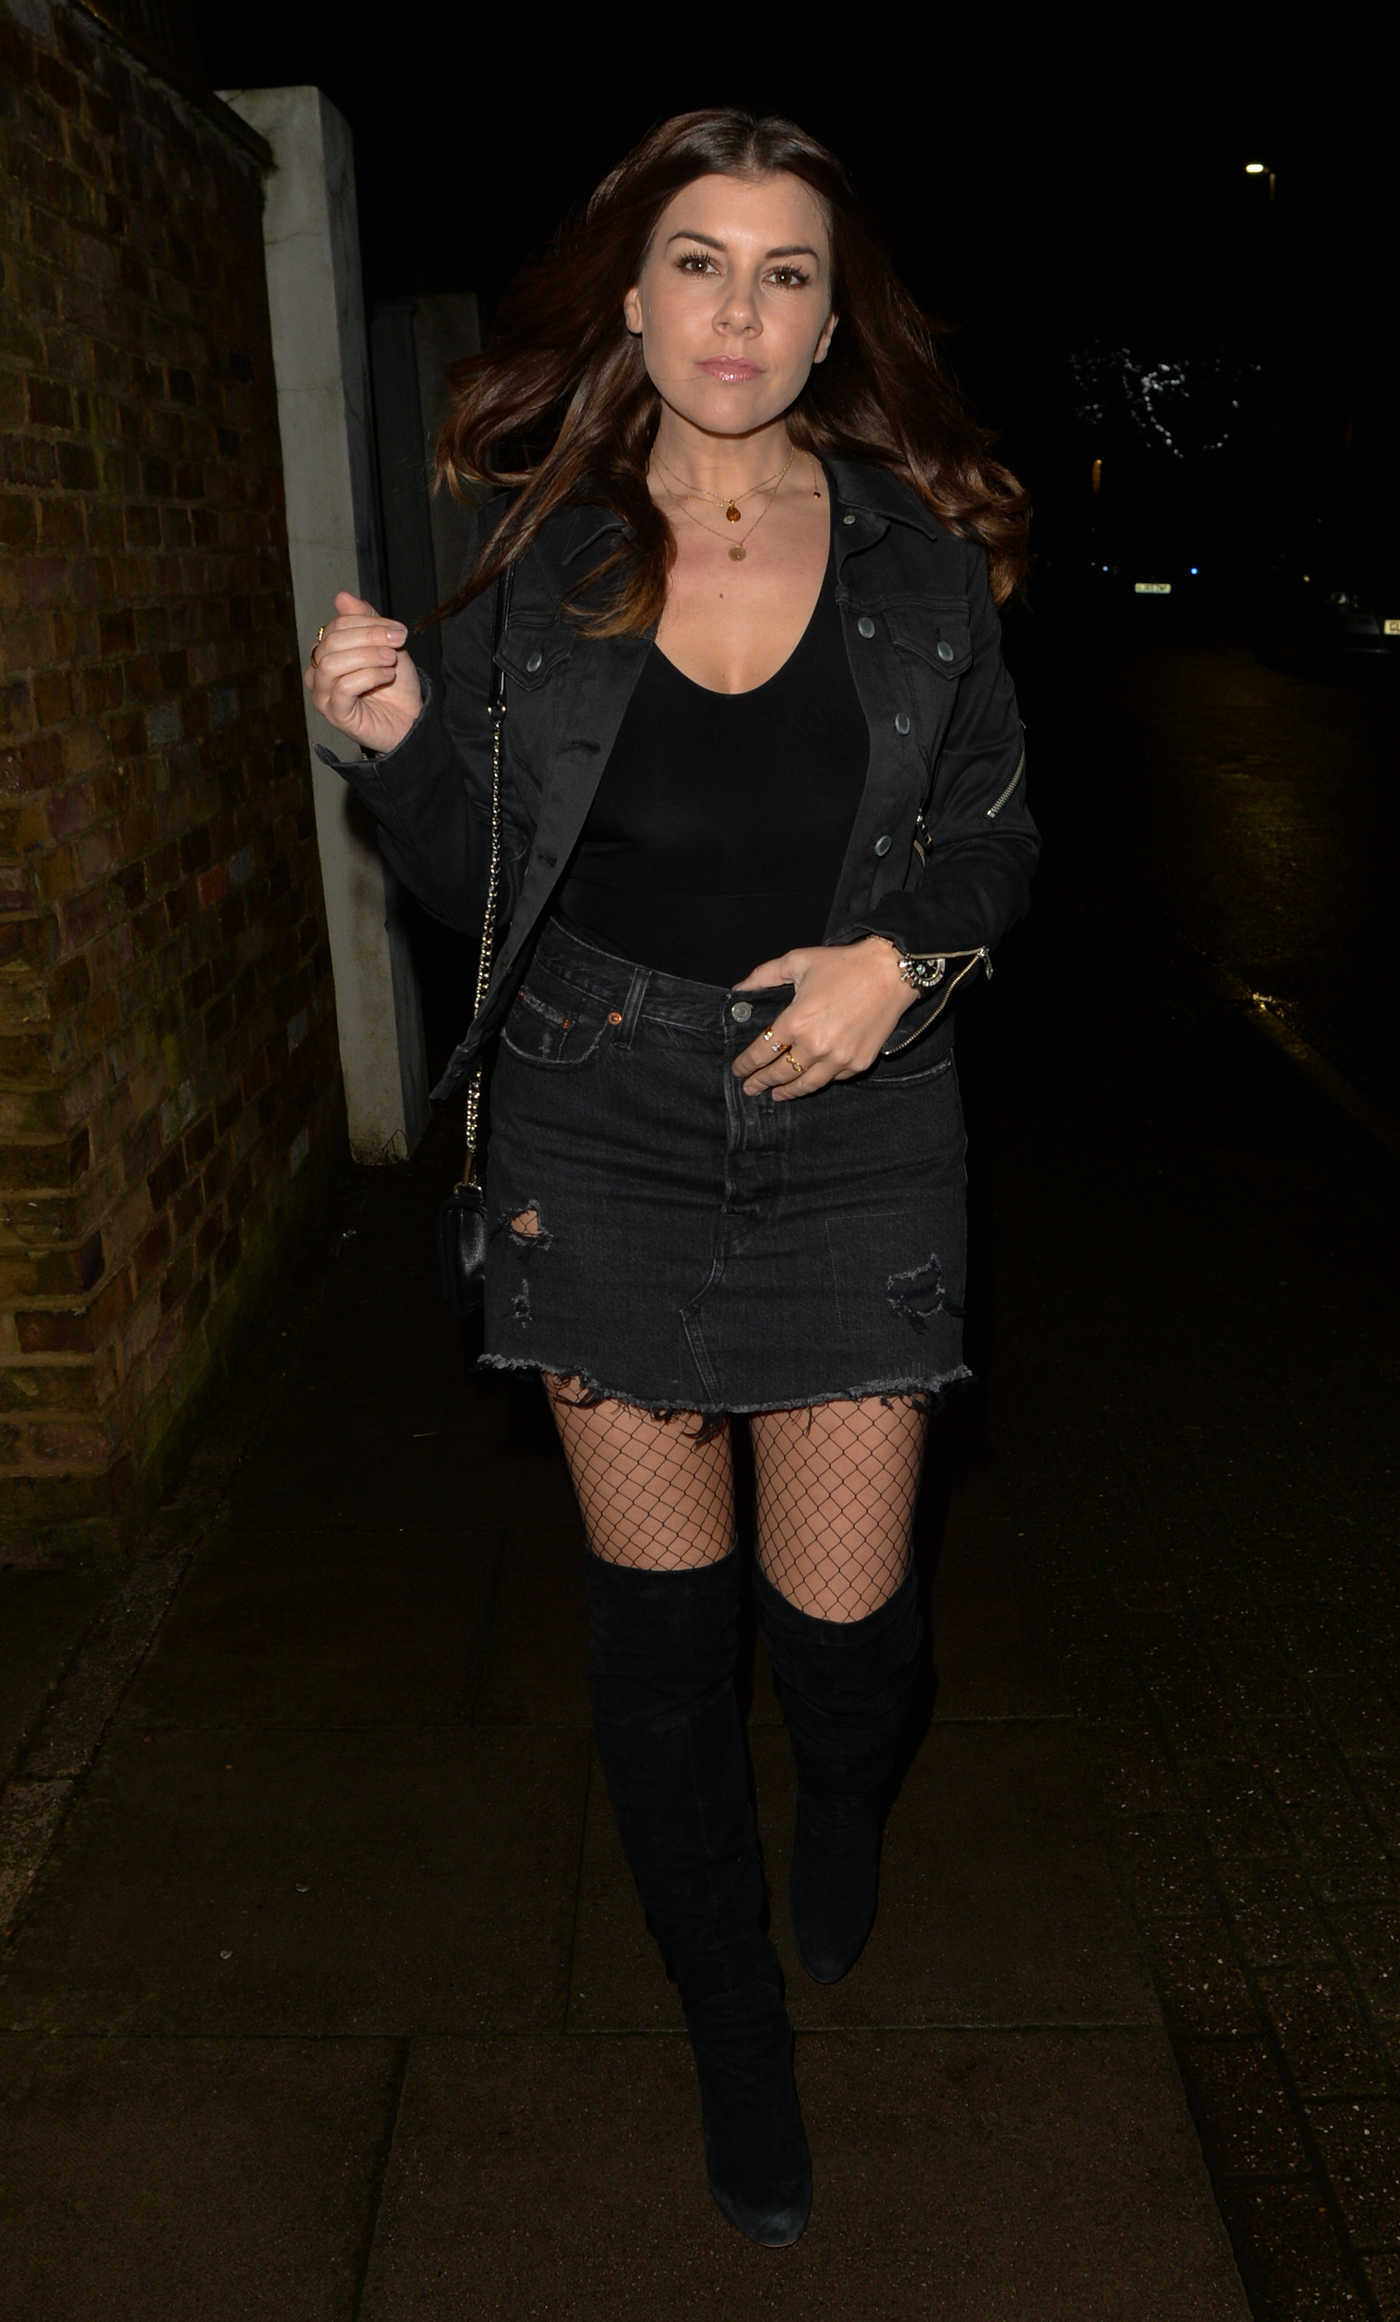 Imogen Thomas in a Black Ripped Denim Skirt Arrives at Soho House in London 01/26/2019